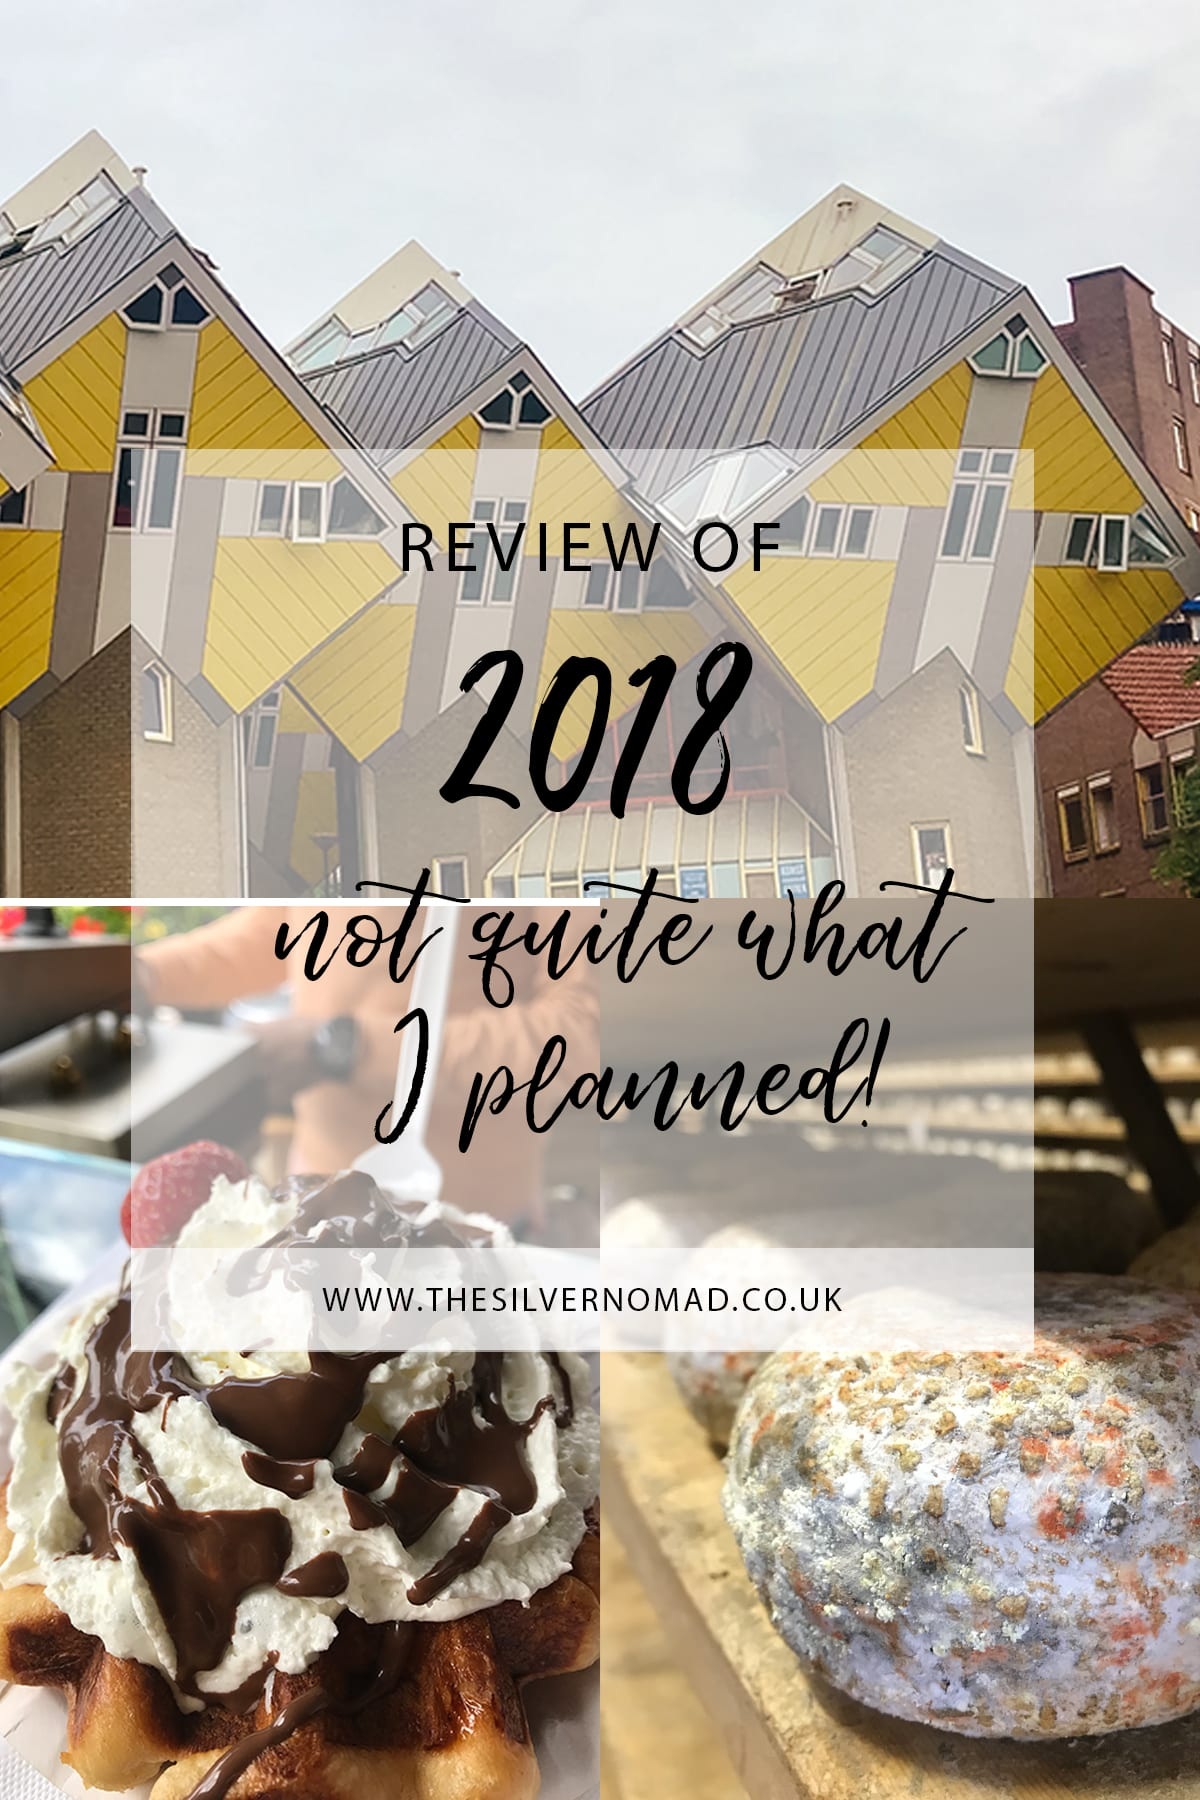 The Silver Nomad Review of 2018